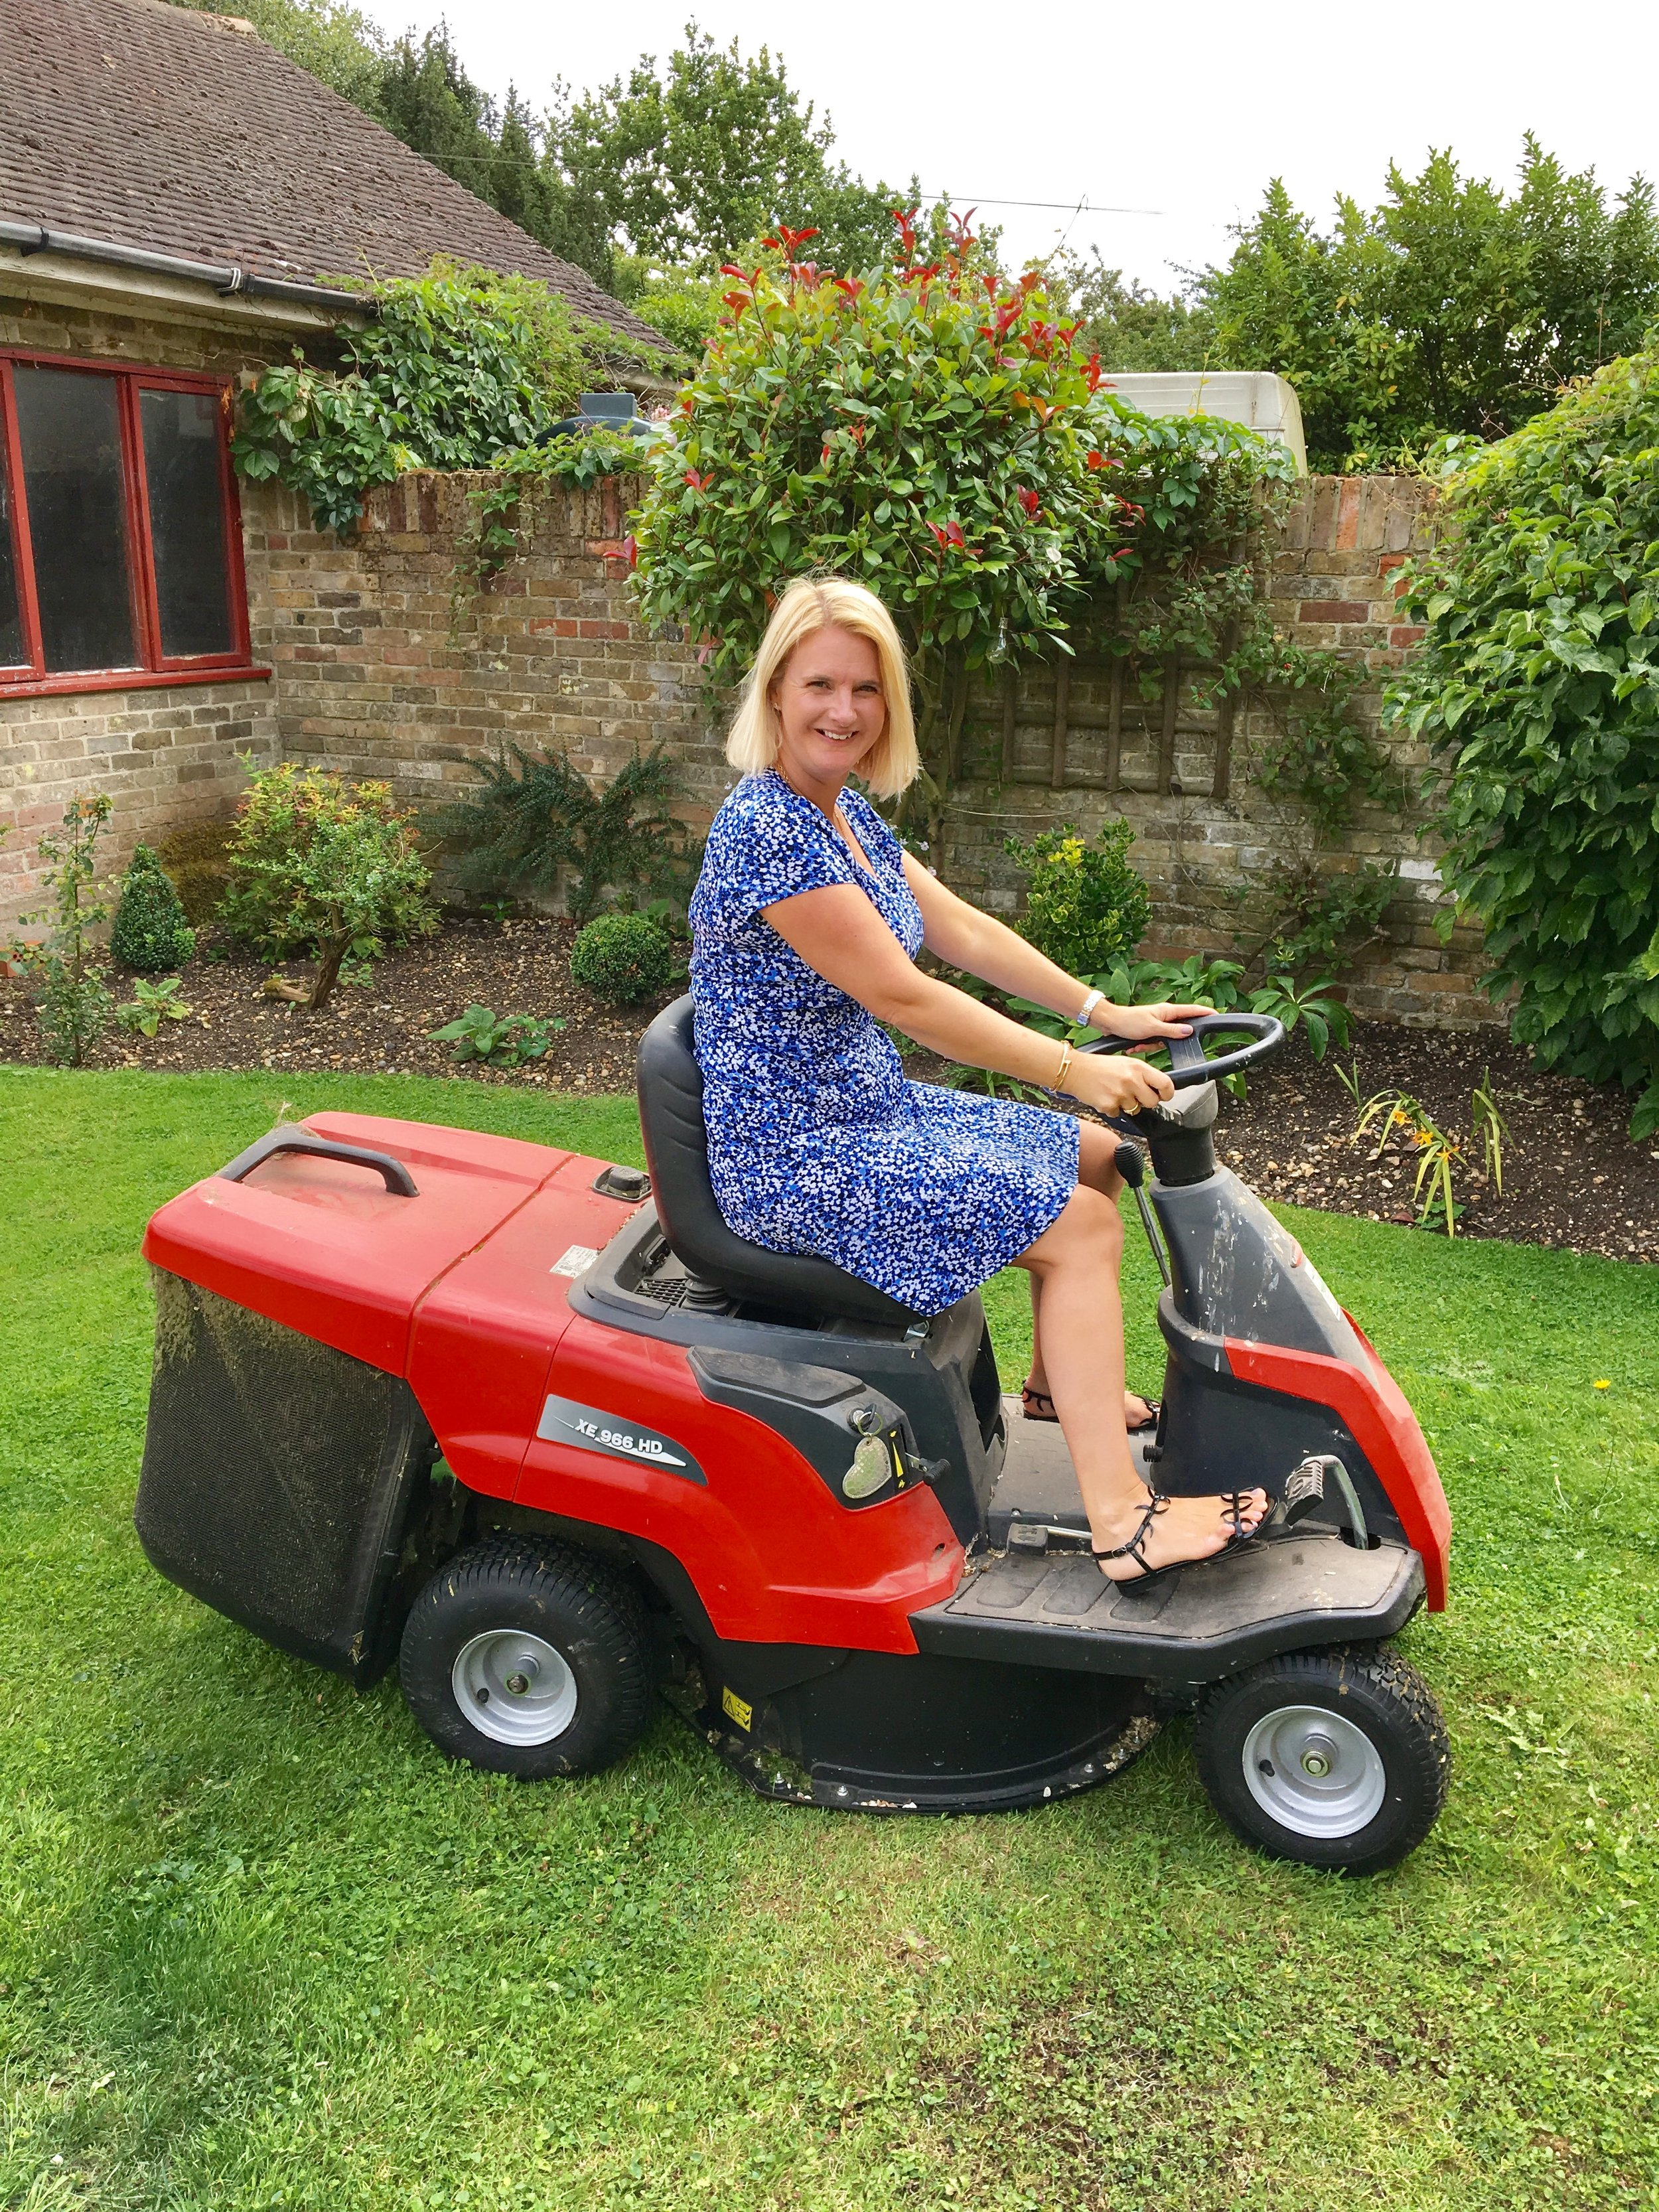 Dress From Micheal Kors, Shoes From Manolo Blahnik, Mower for my birthday last year, C knows how to treat a lady! Hahahahahahah.  I'm more Margot from The Good Life than Barbara when it comes to gardening, but at least I get it done.